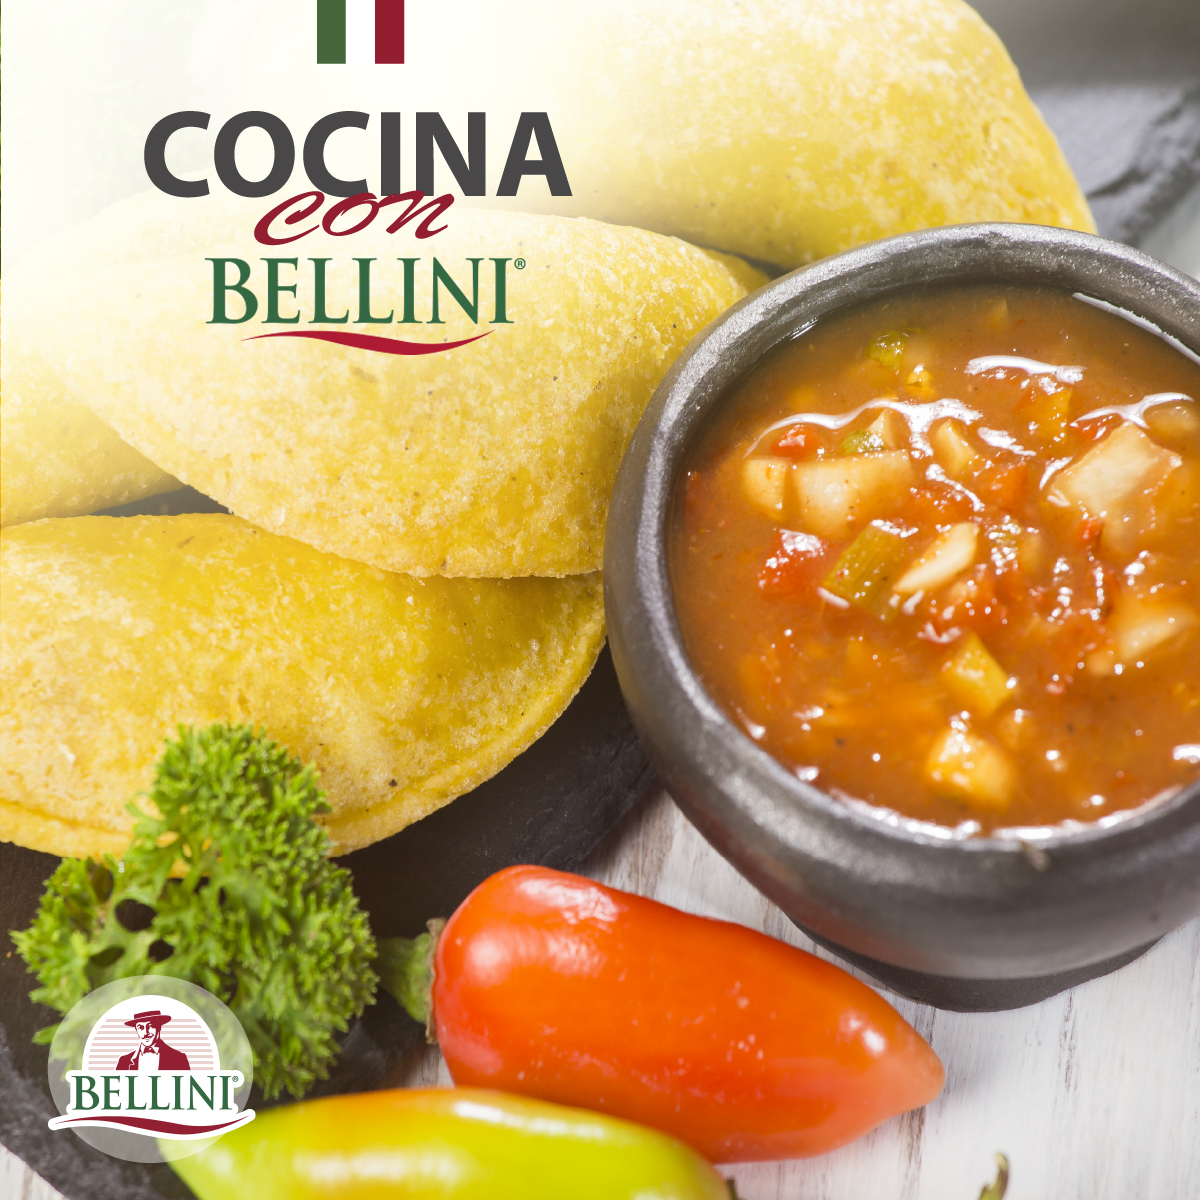 Bellini Food Products